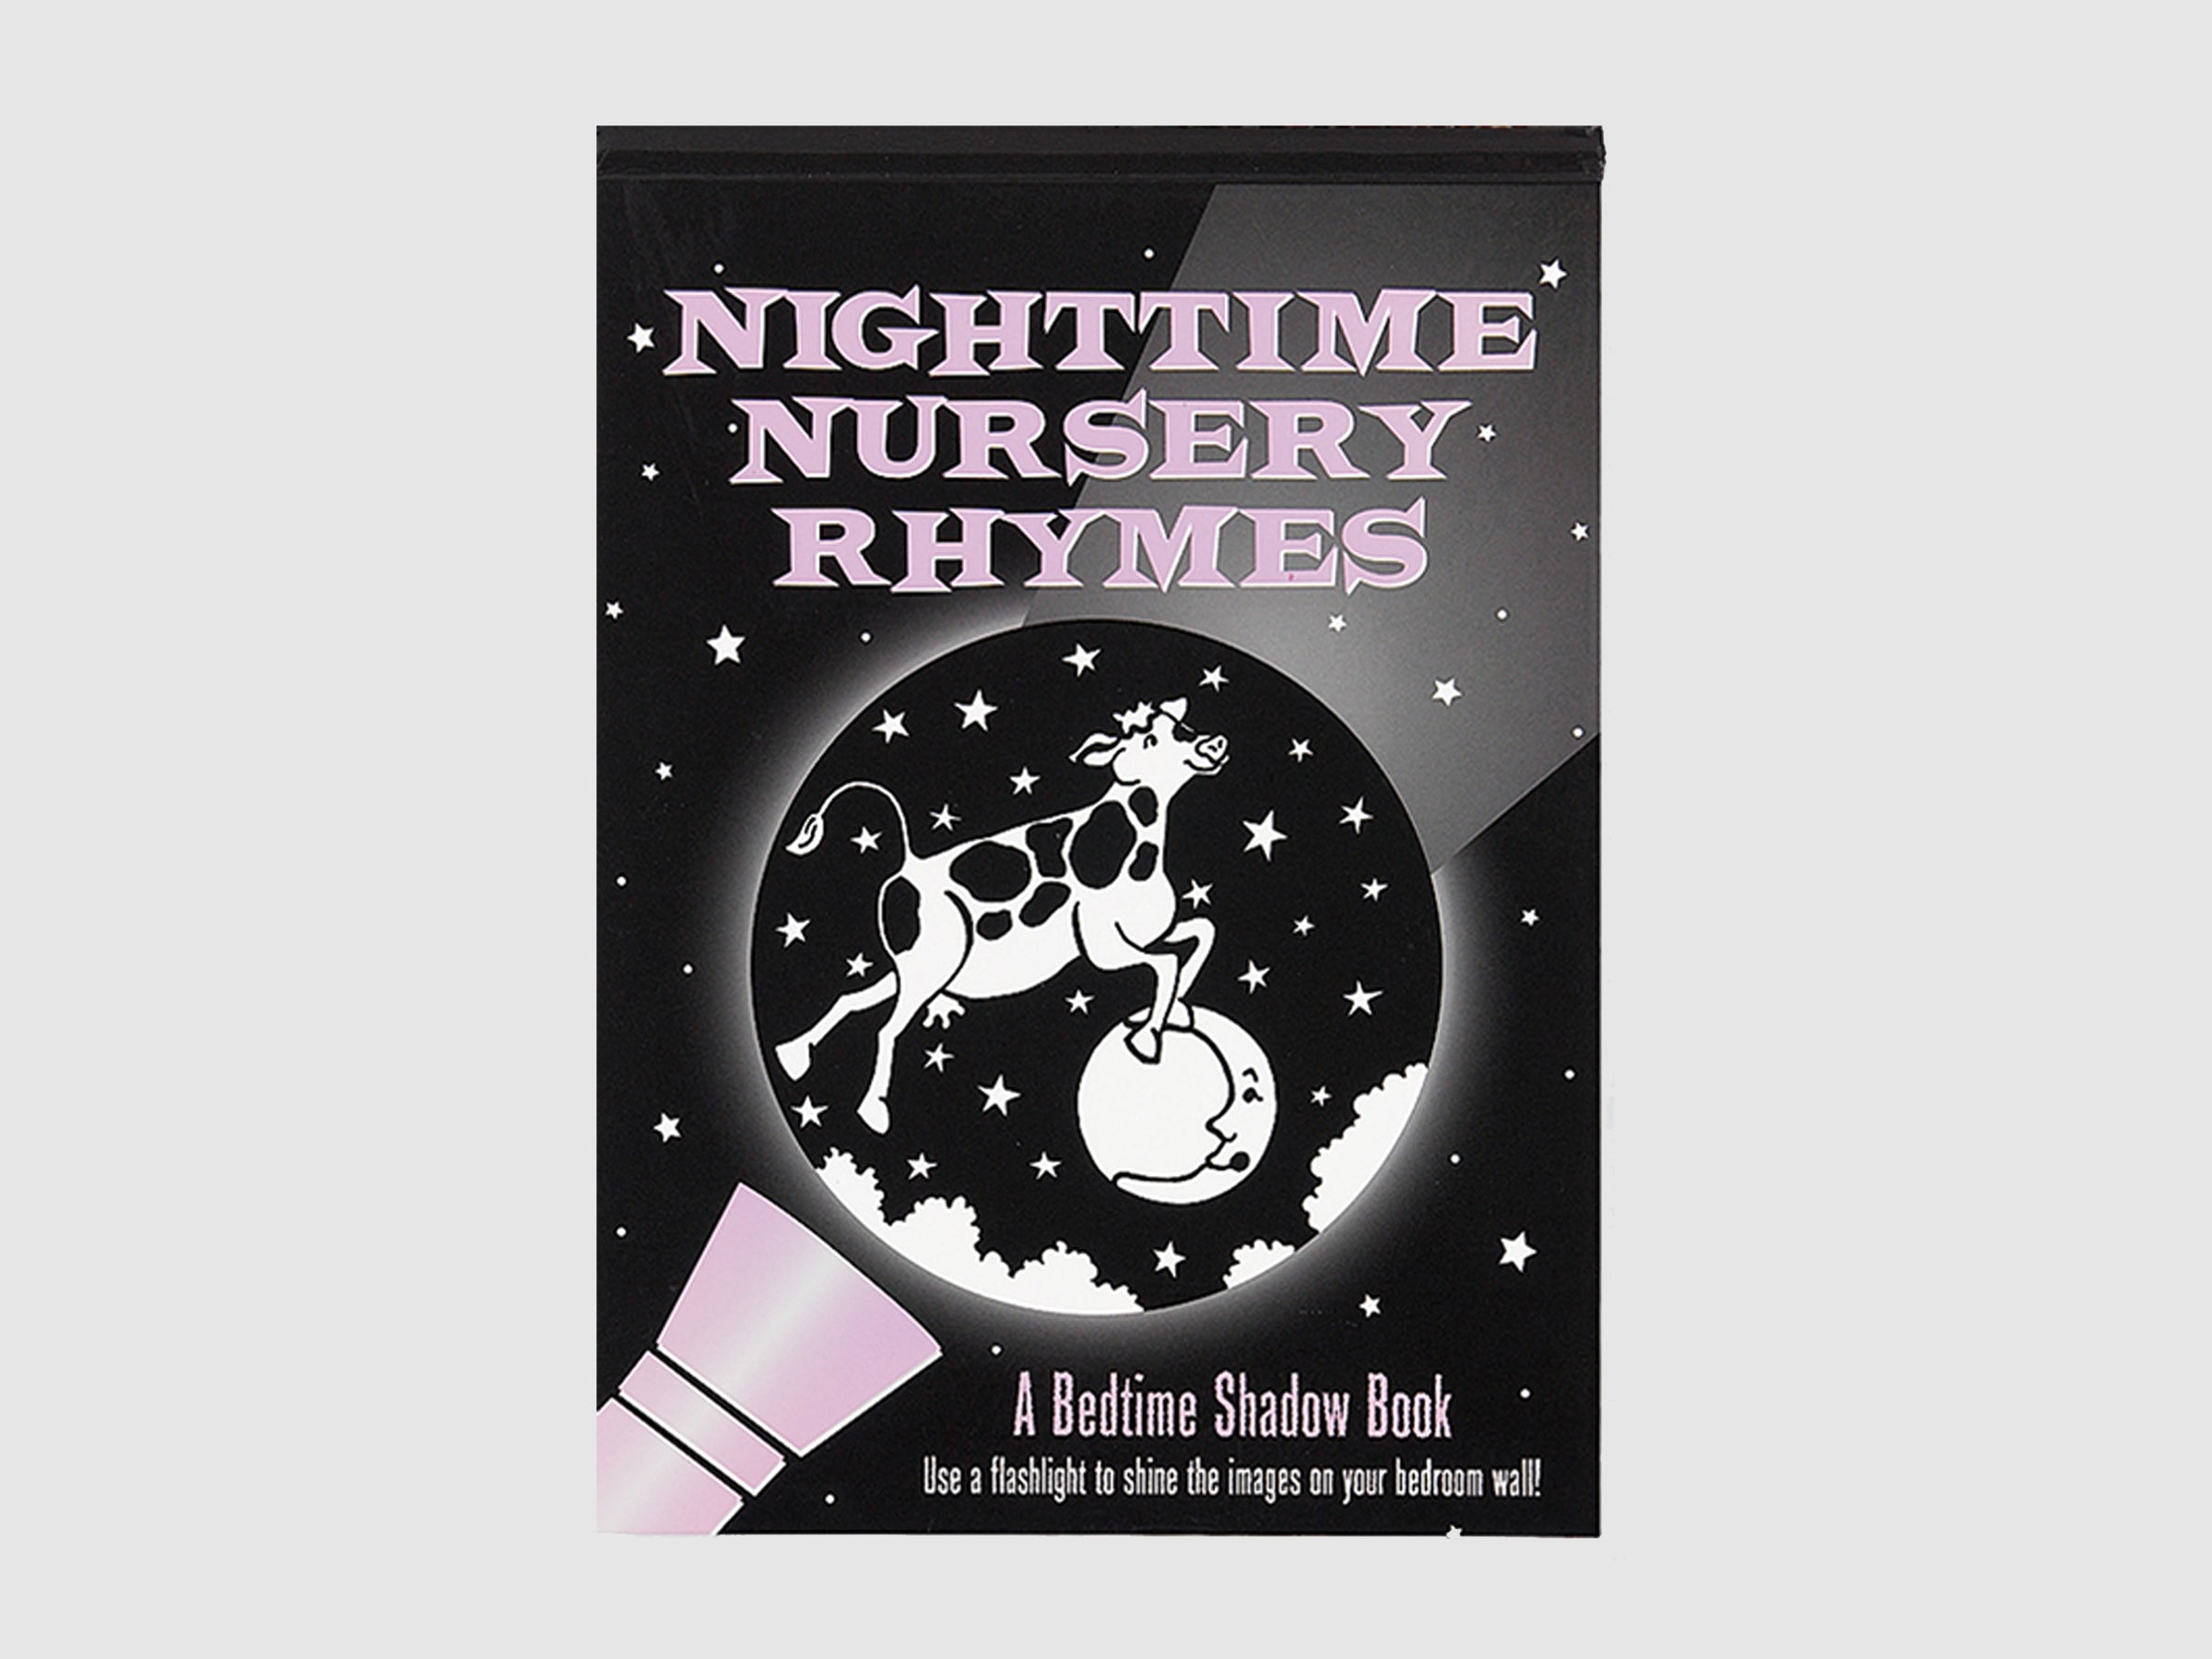 Nighttime Nursery Rhymes